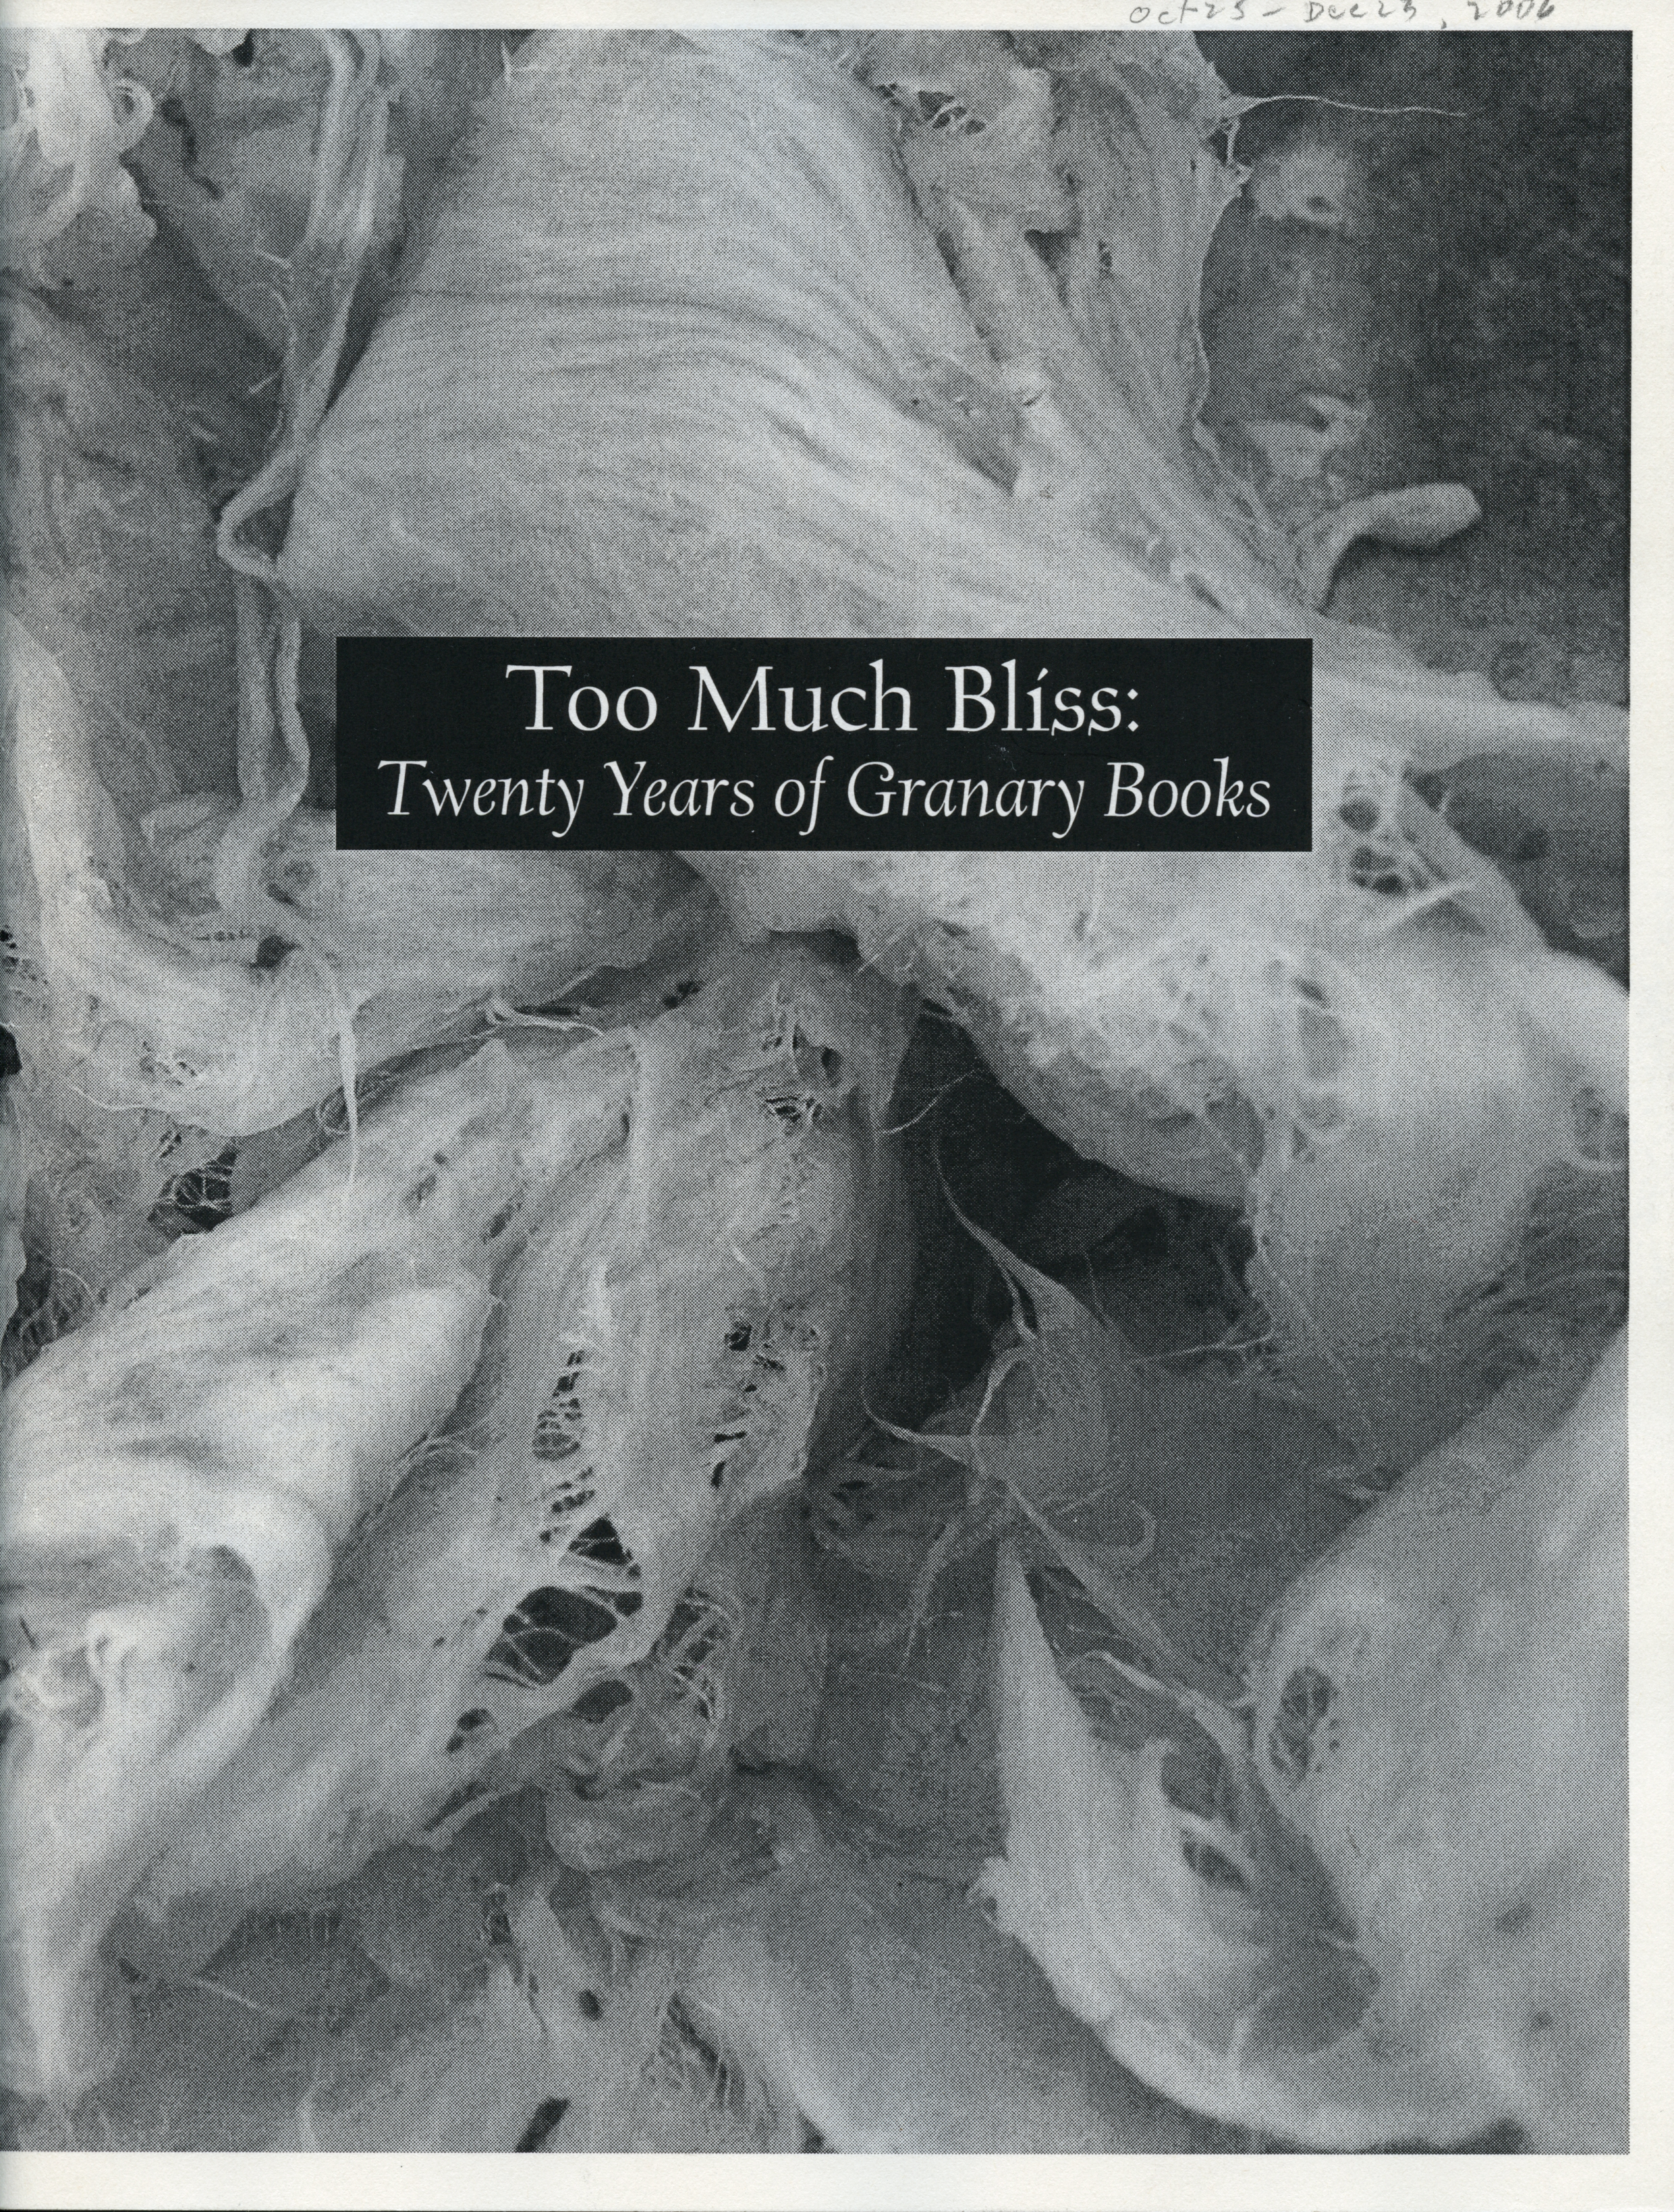 Too Much Bliss: Twenty Years of Granary Books